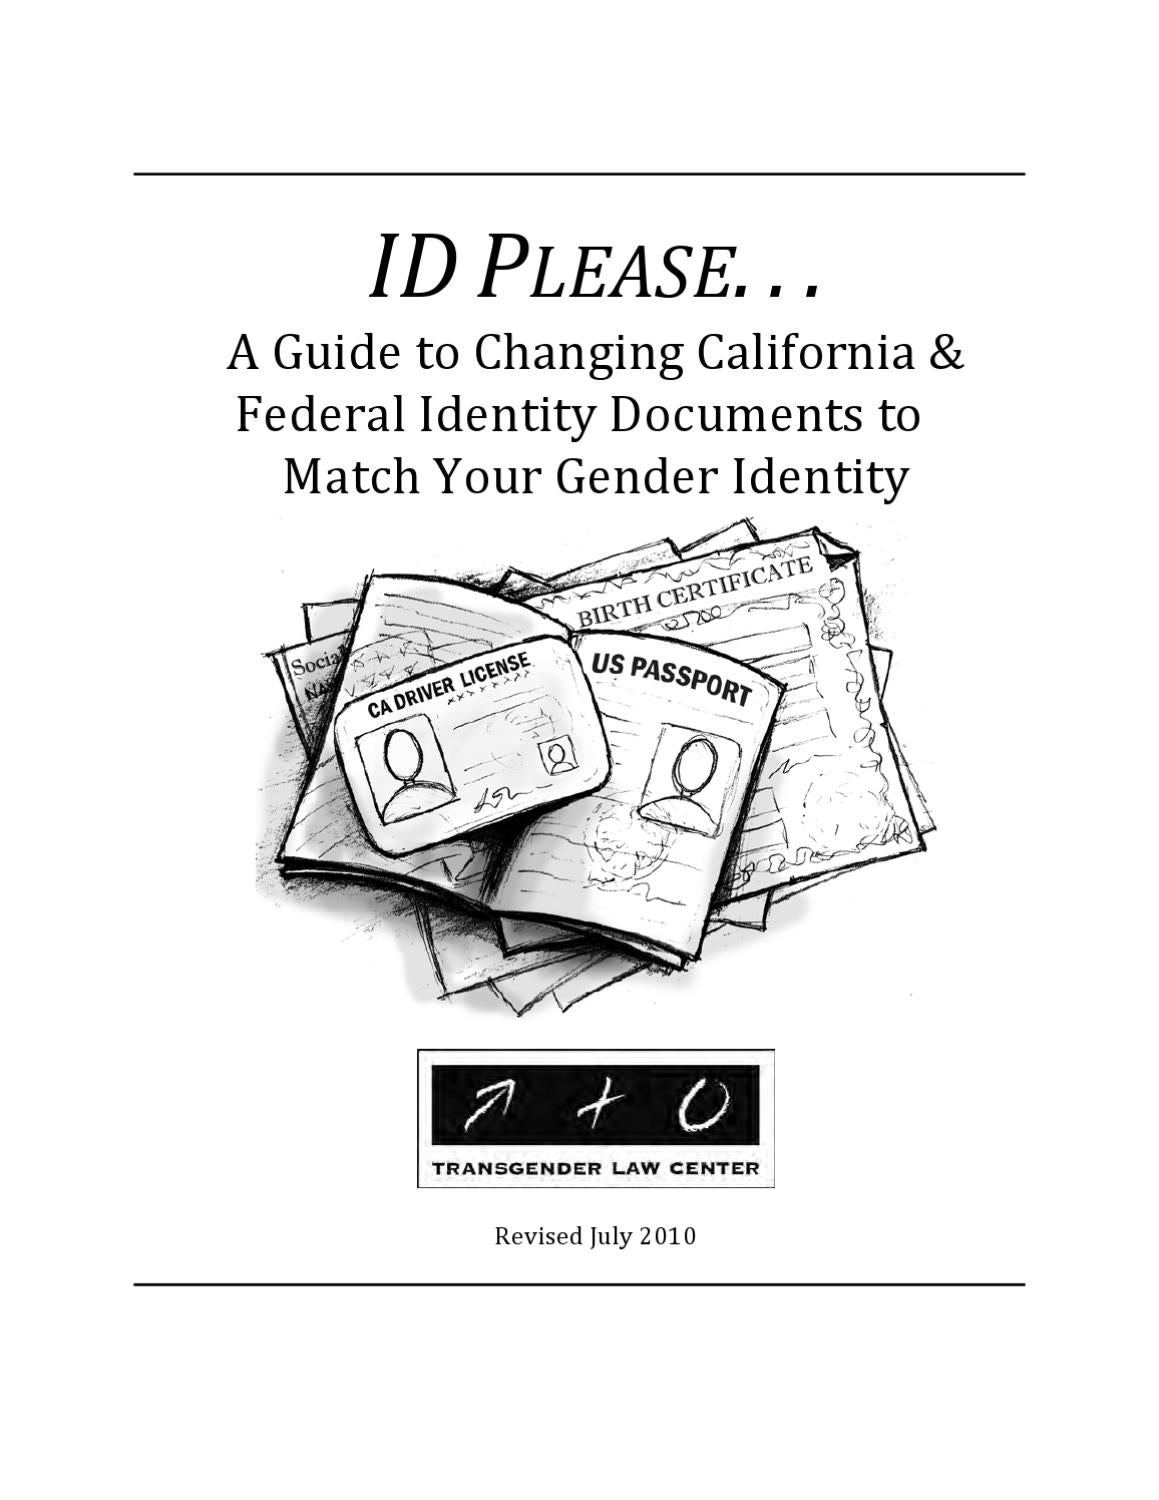 ID Please: A Guide to Changing California and Federal IDs to